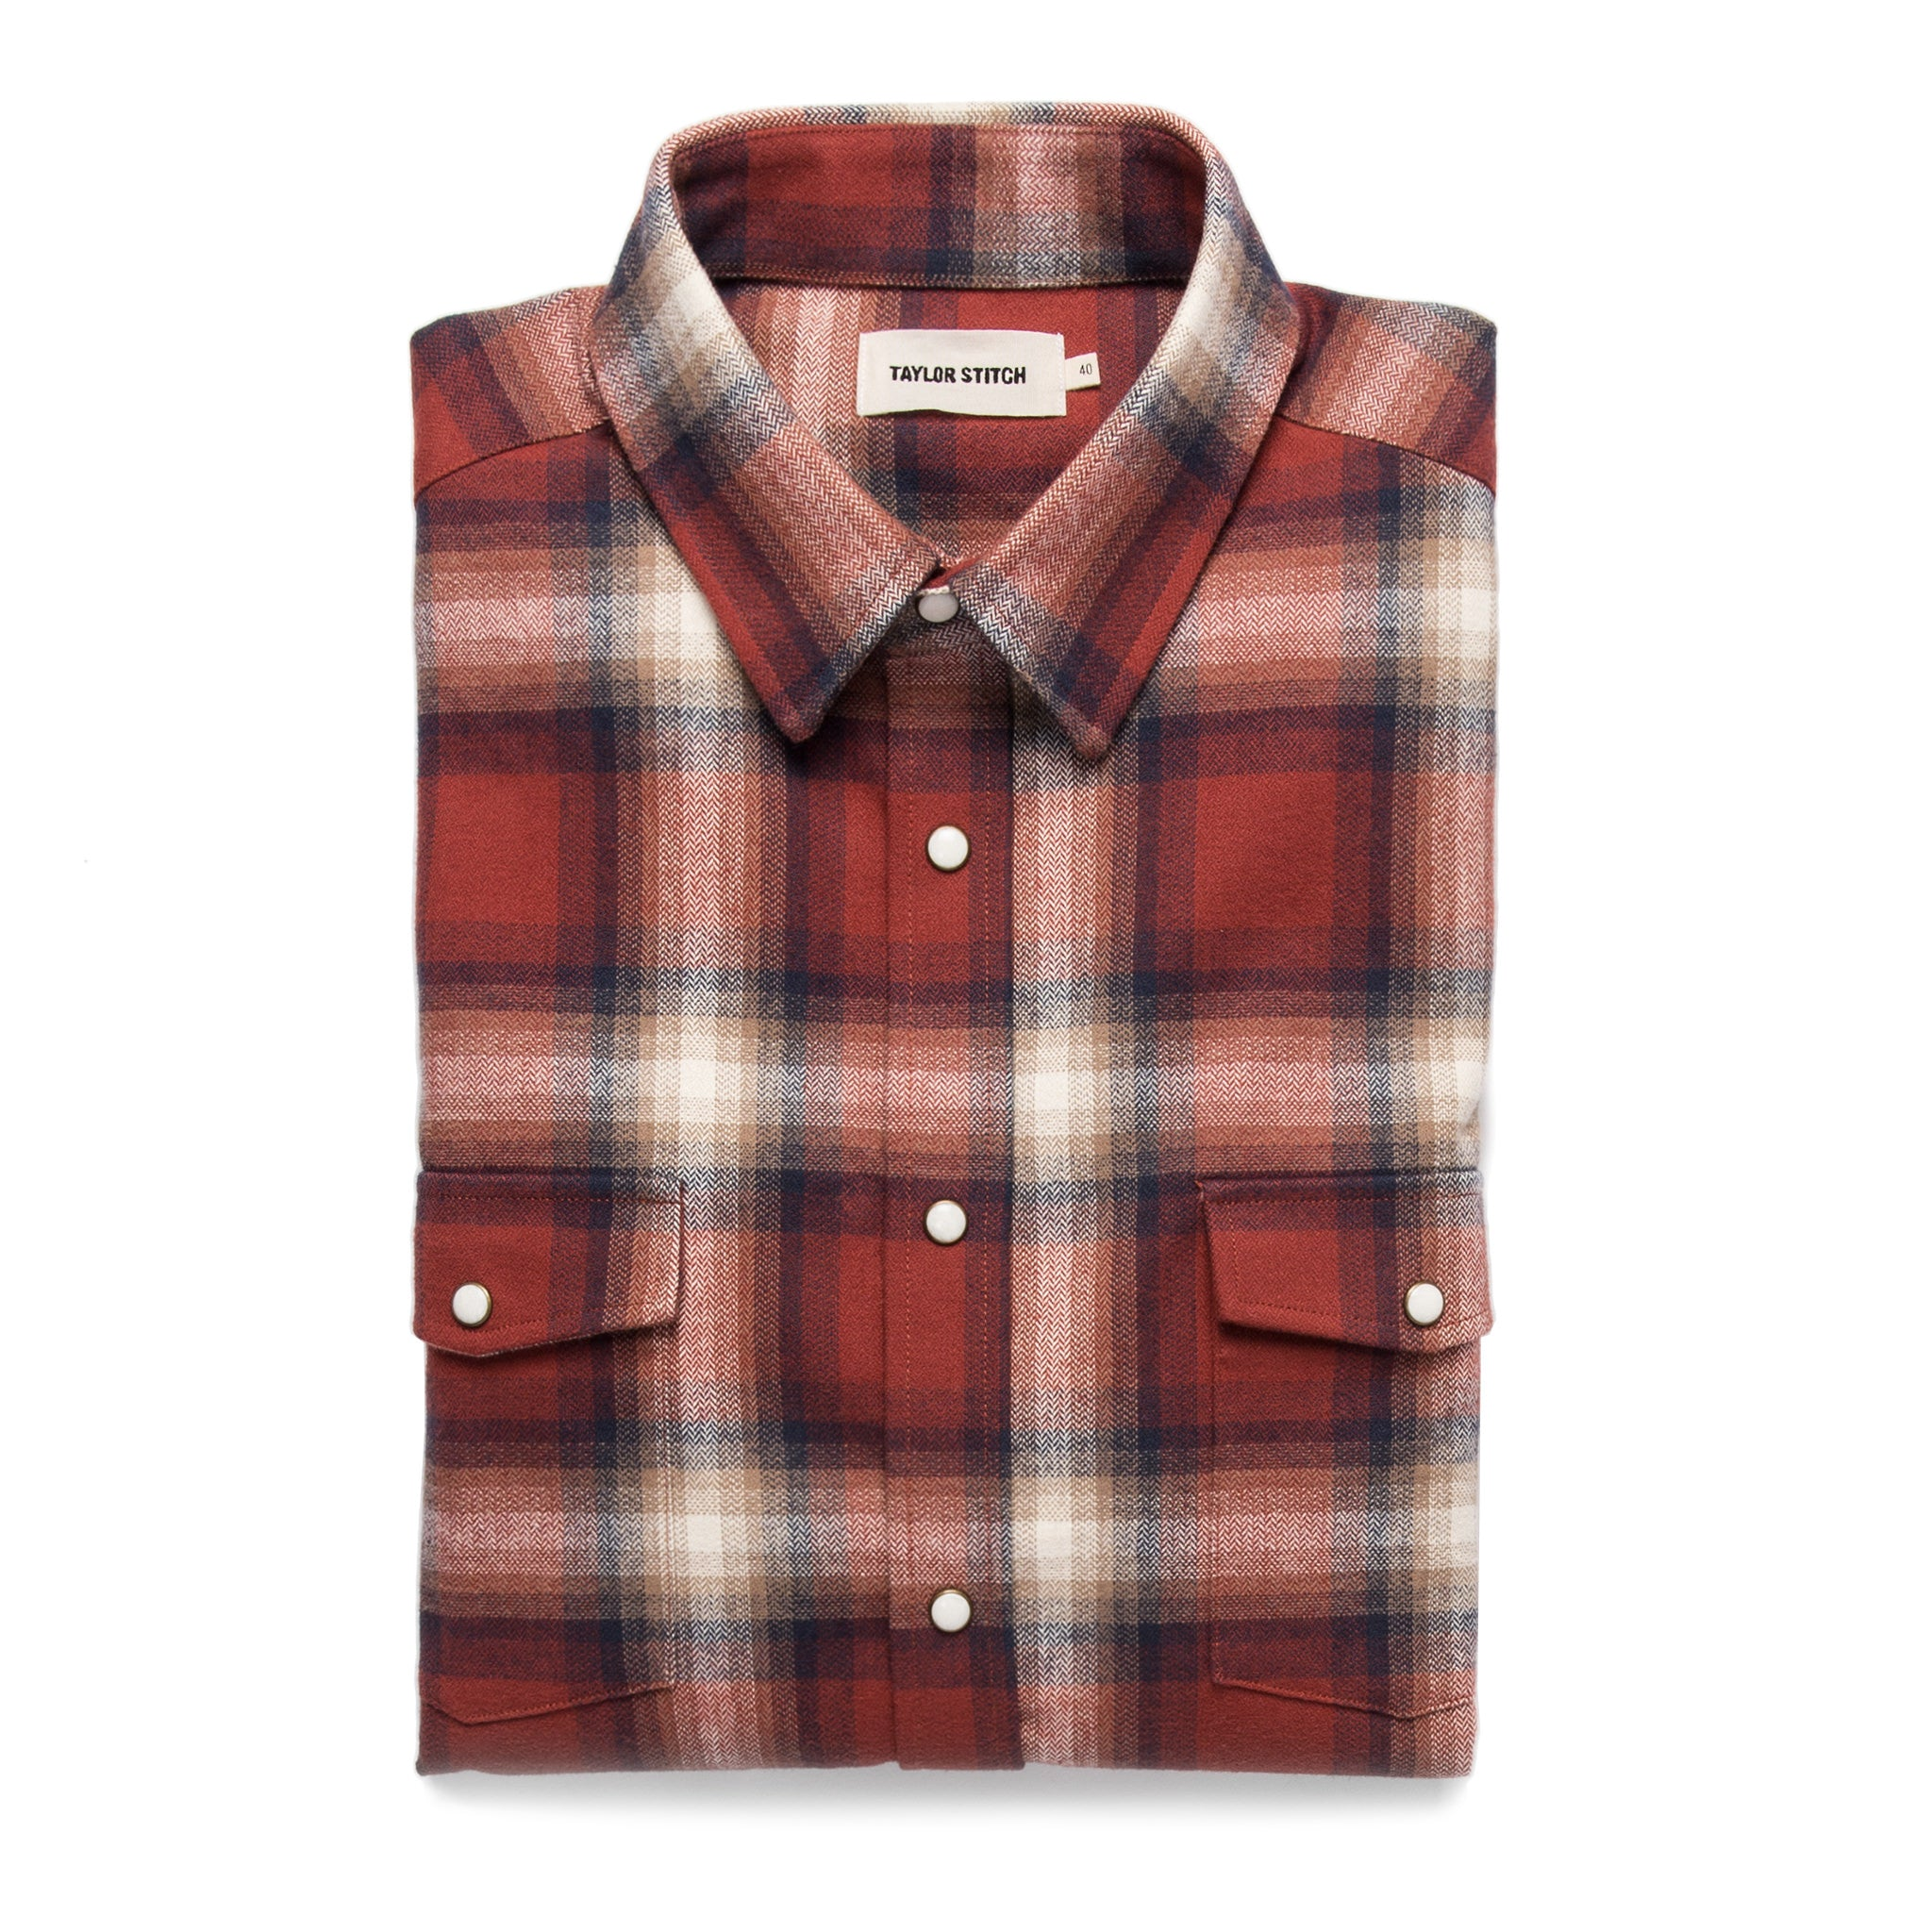 f2b79968e4 The Glacier Shirt in Red Plaid - Classic Men s Clothing